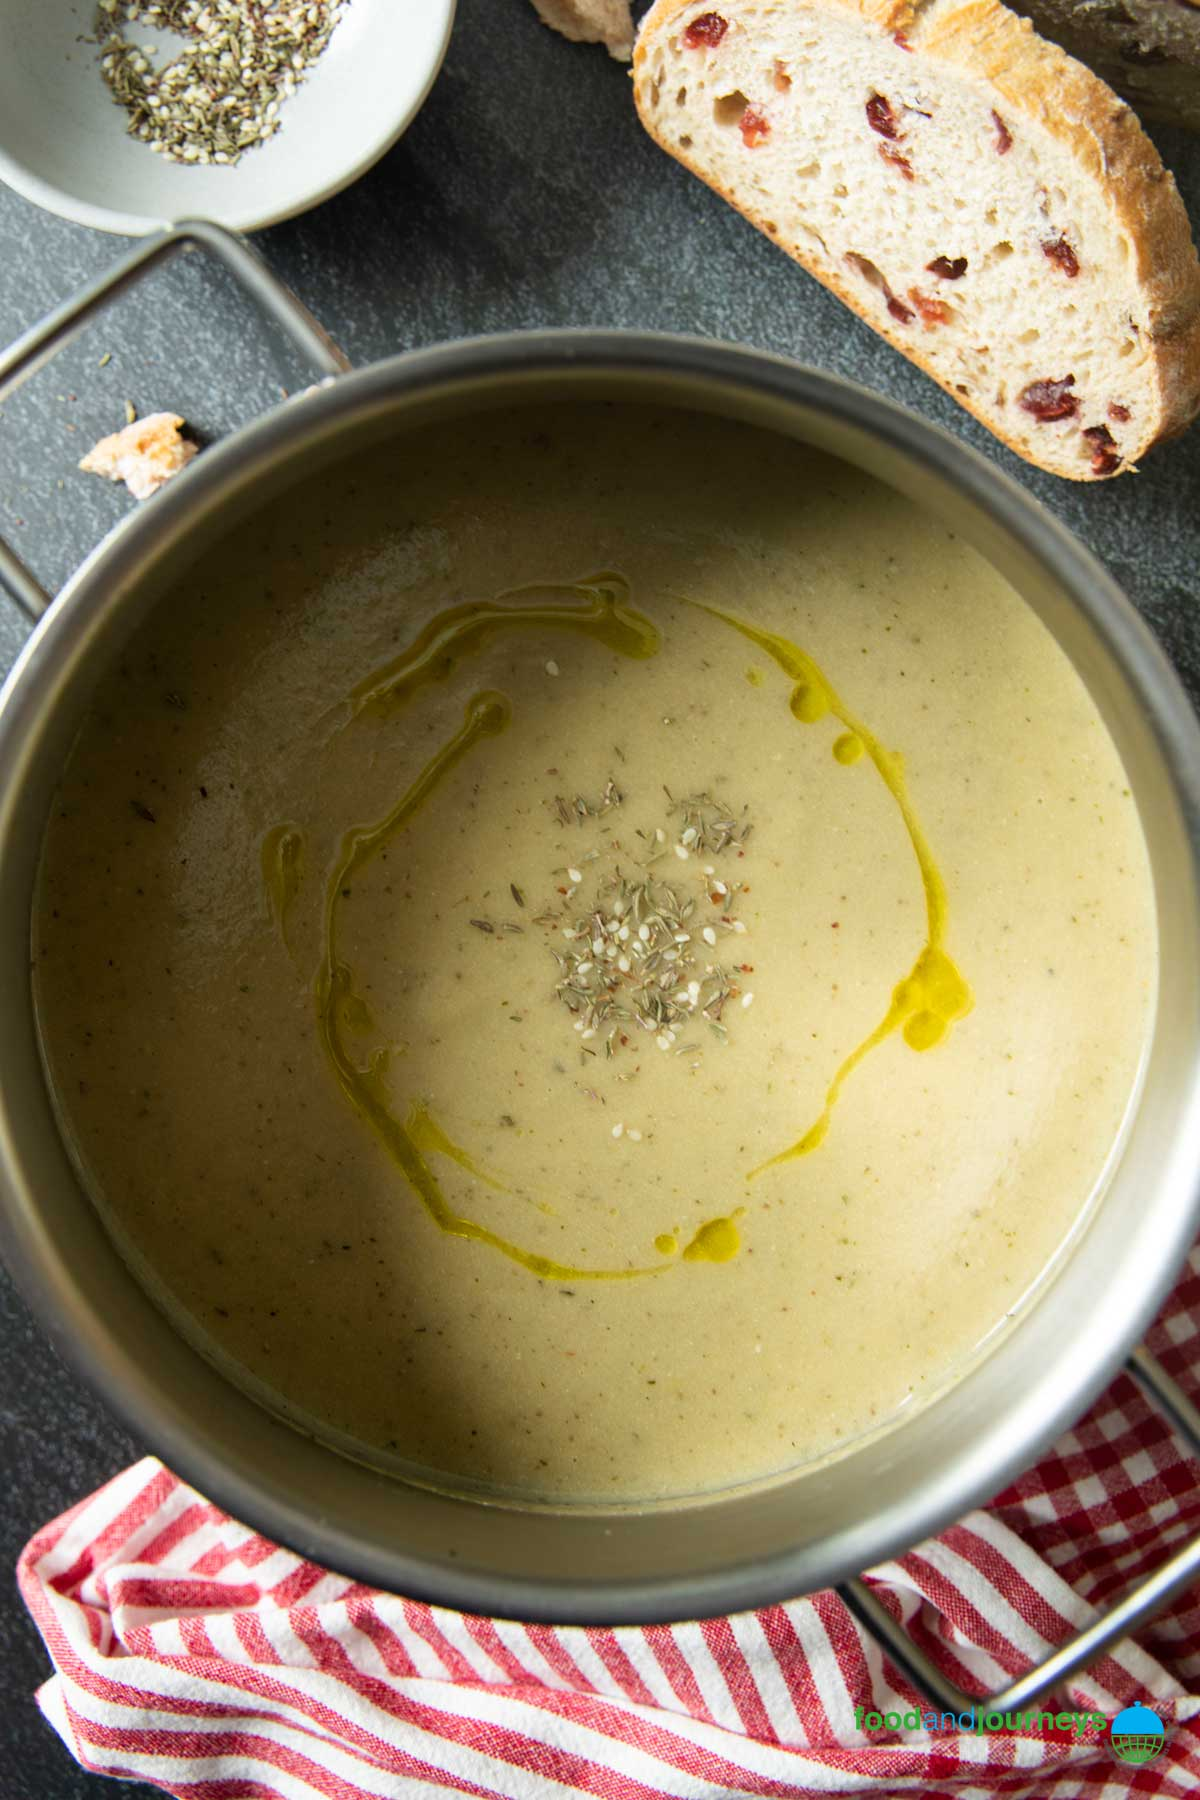 An overhead shot of a pan of Turkish-Style Roasted Eggplant Soup, served with some bread.